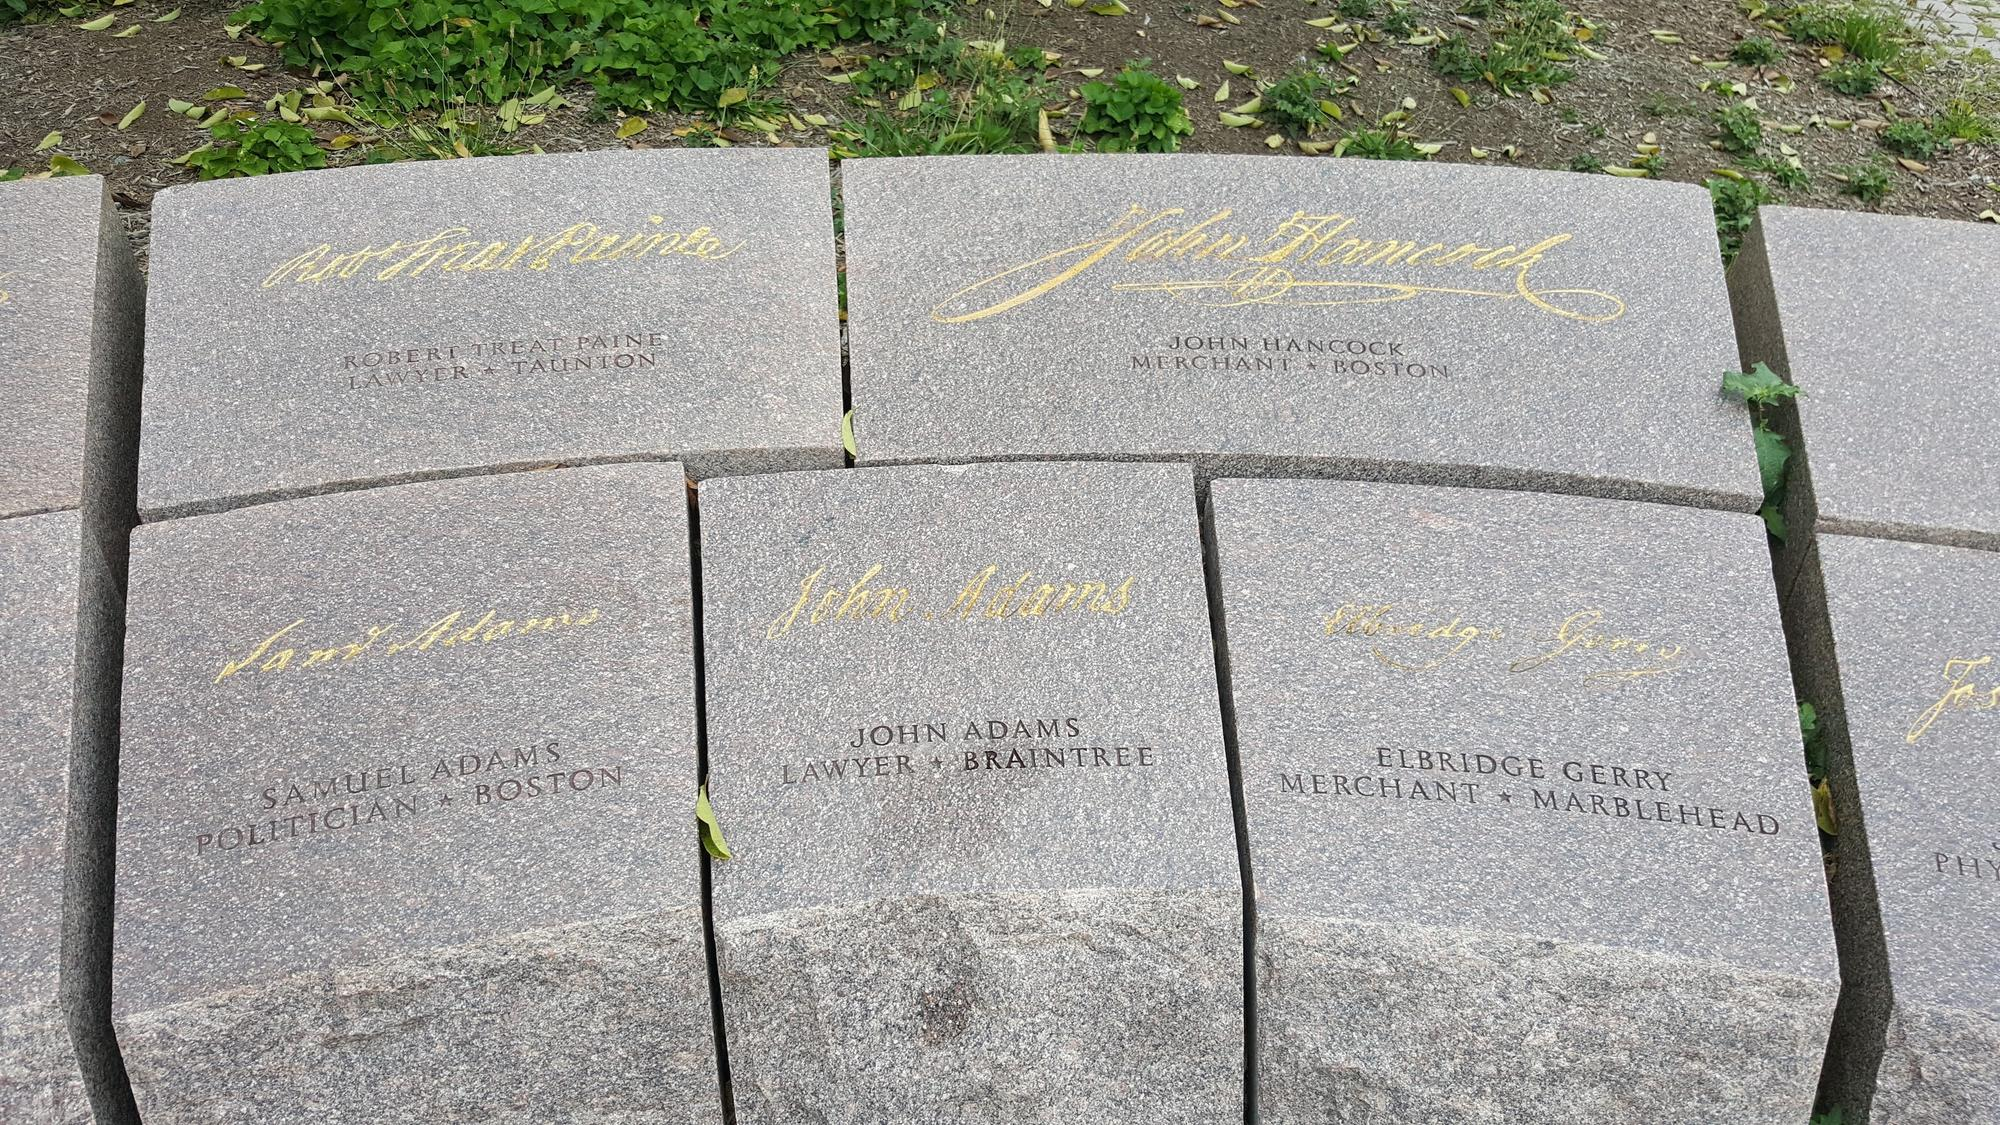 Massachusetts Signers Represented at the Memorial to the 56 Signers